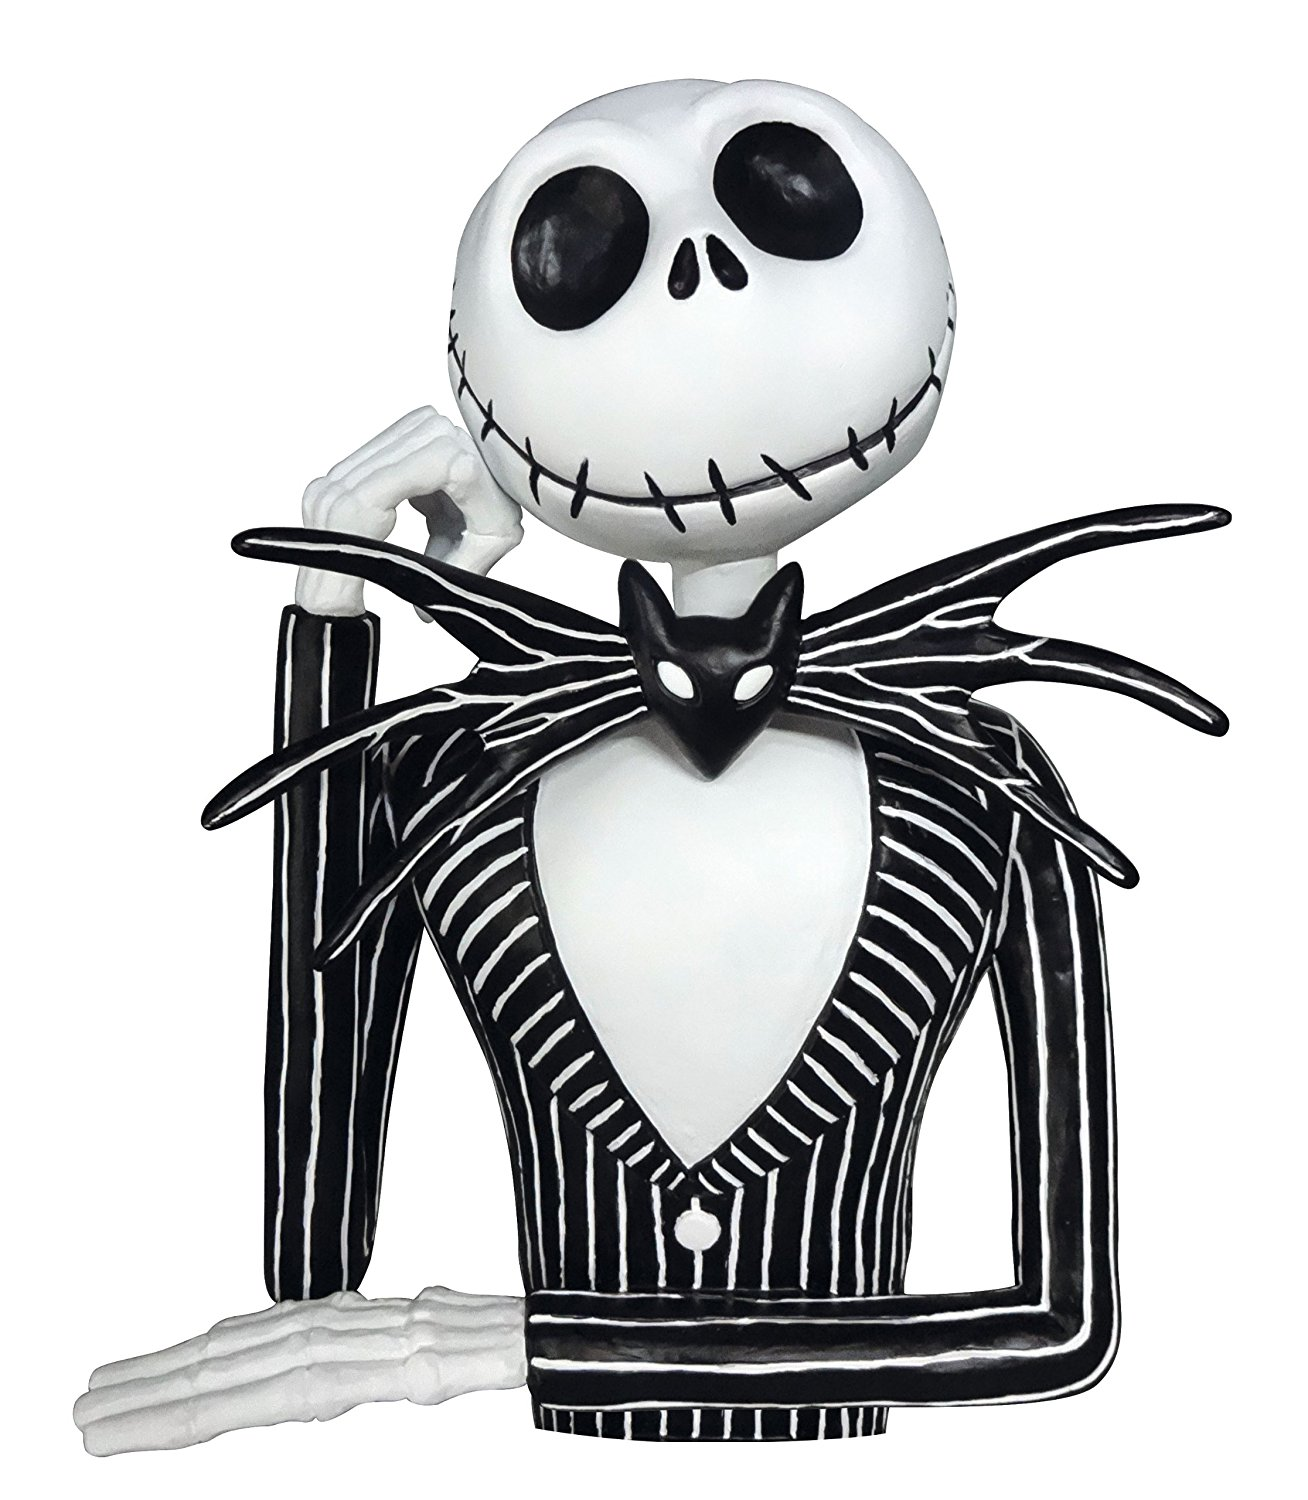 main image - Jack From Nightmare Before Christmas